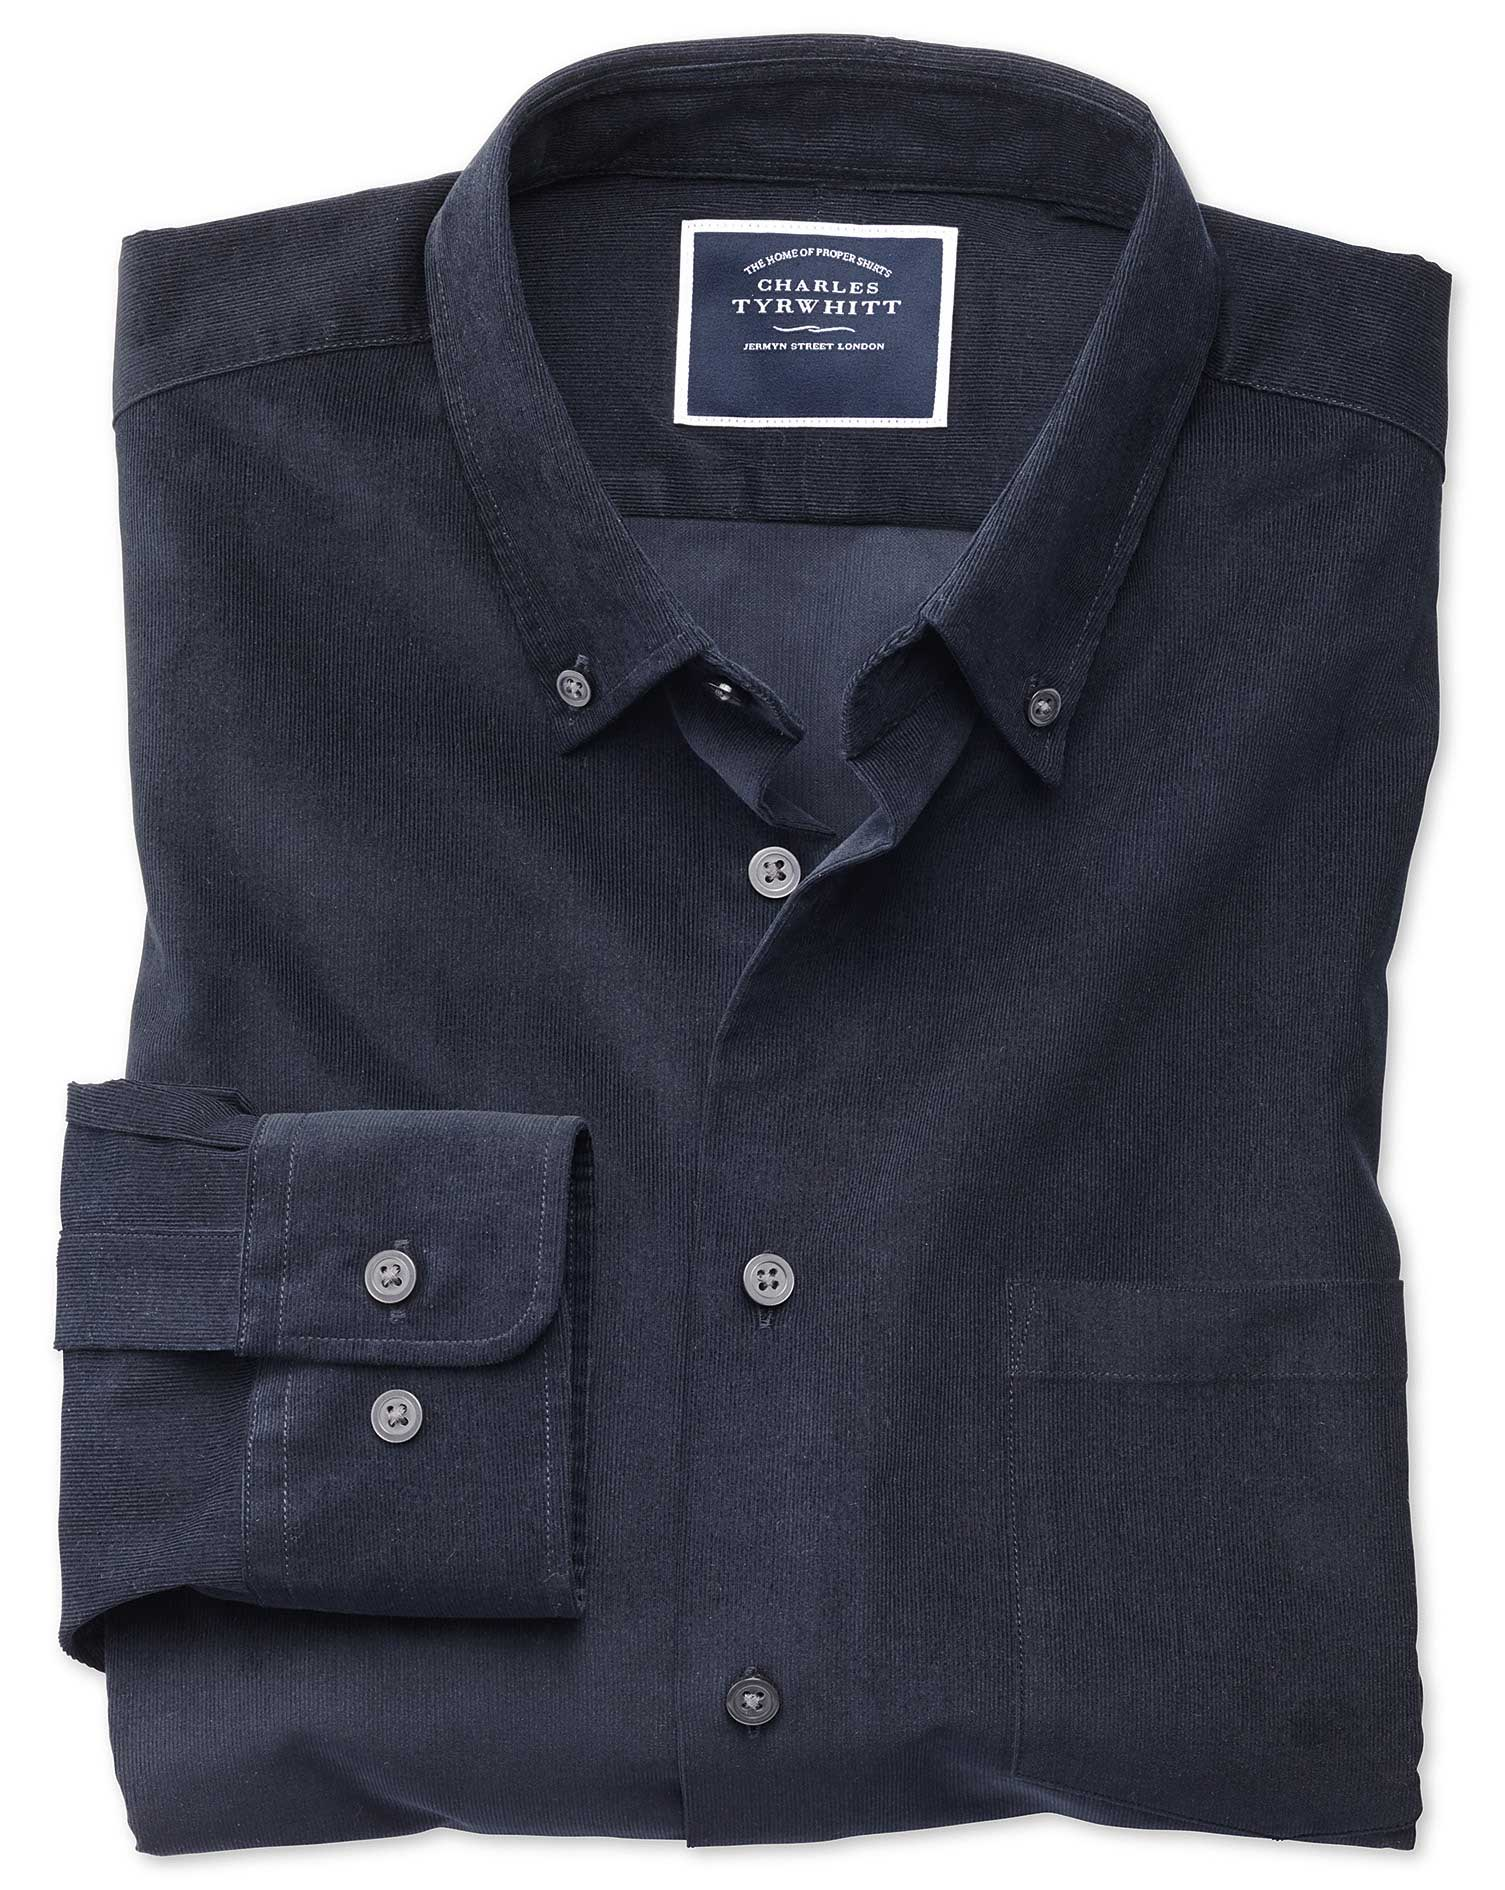 Classic Fit Plain Navy Fine Corduroy Cotton Shirt Single Cuff Size Small by Charles Tyrwhitt